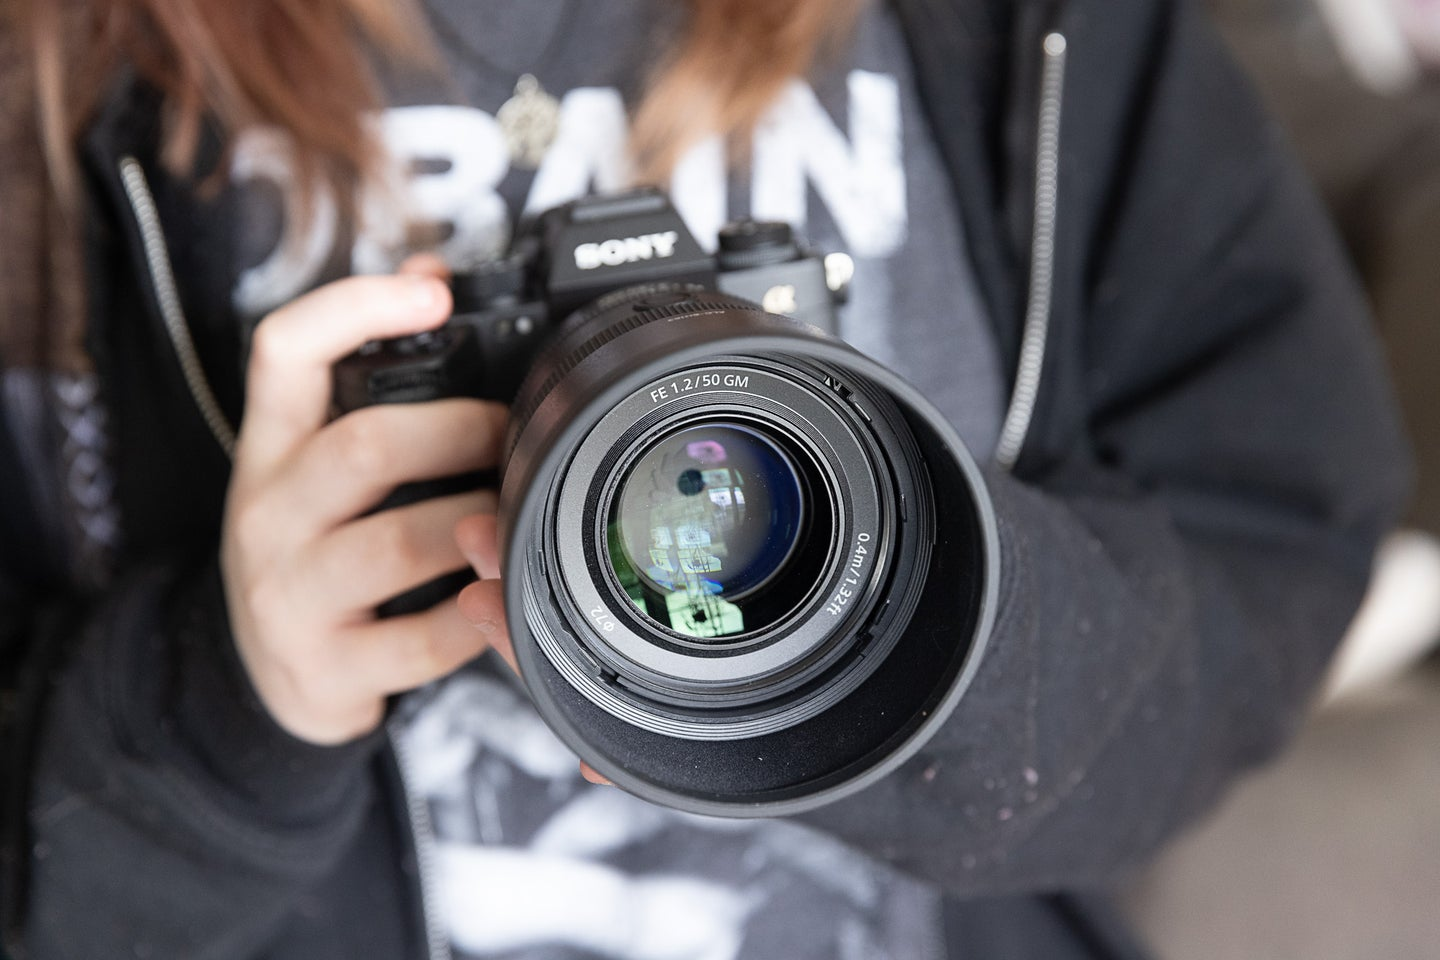 Sony 50mm f/1.2 GM lens on a Sony A1